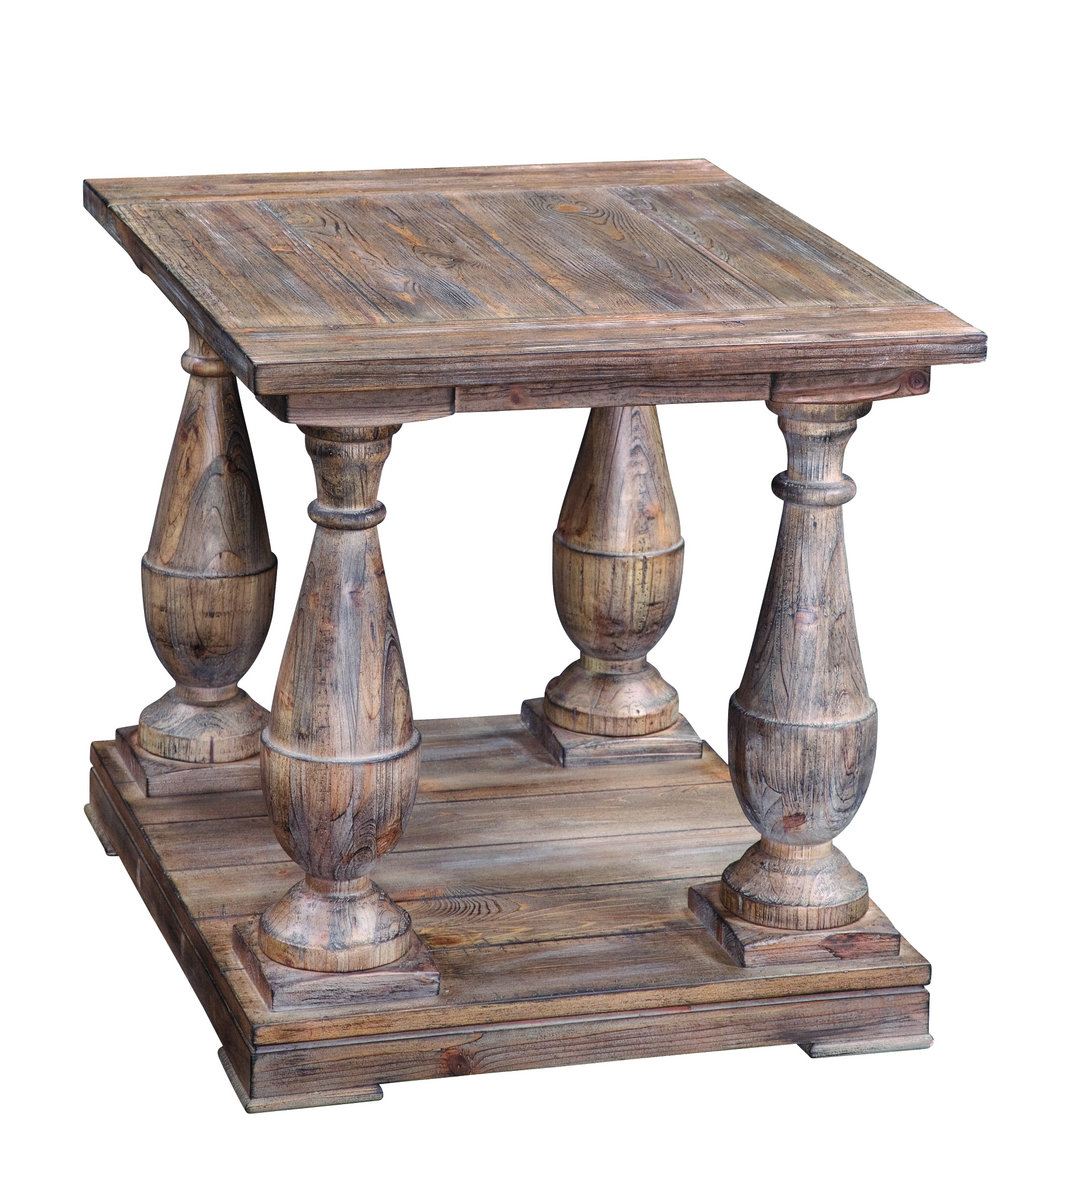 hitchcock rectangular end table smoked barnwood finish accent rustic tables diy patio furniture las vegas desk luxury tablecloths century coffee entry decor ideas storage with